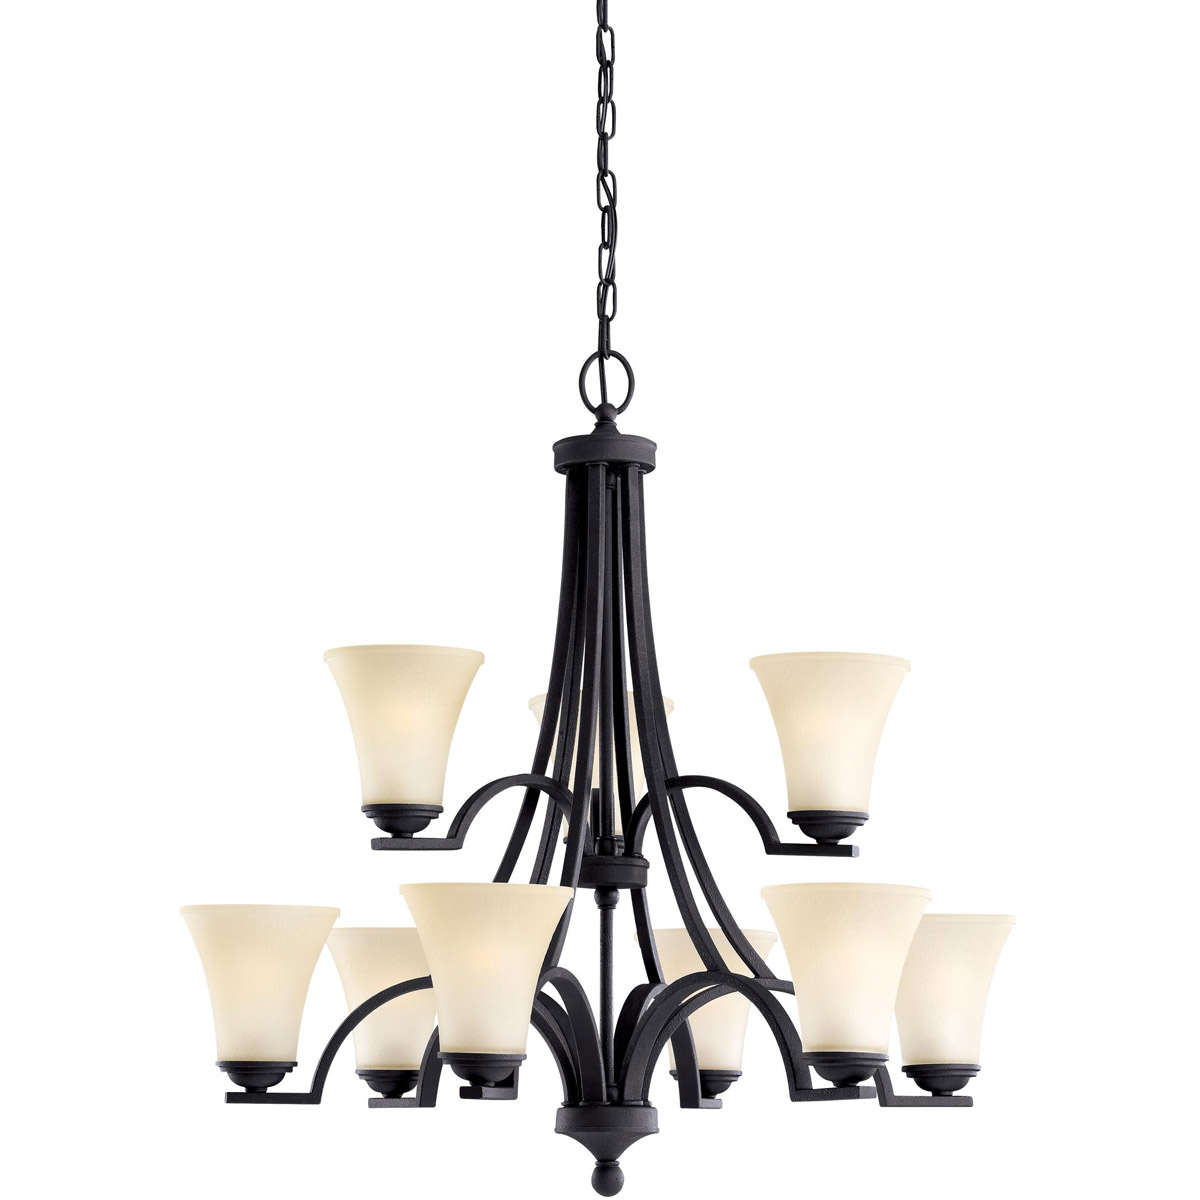 Sea Gull 31377-839 Somerton 9 Light 30 inch Blacksmith Chandelier Ceiling Light in Cafe Tint Glass, Standard photo